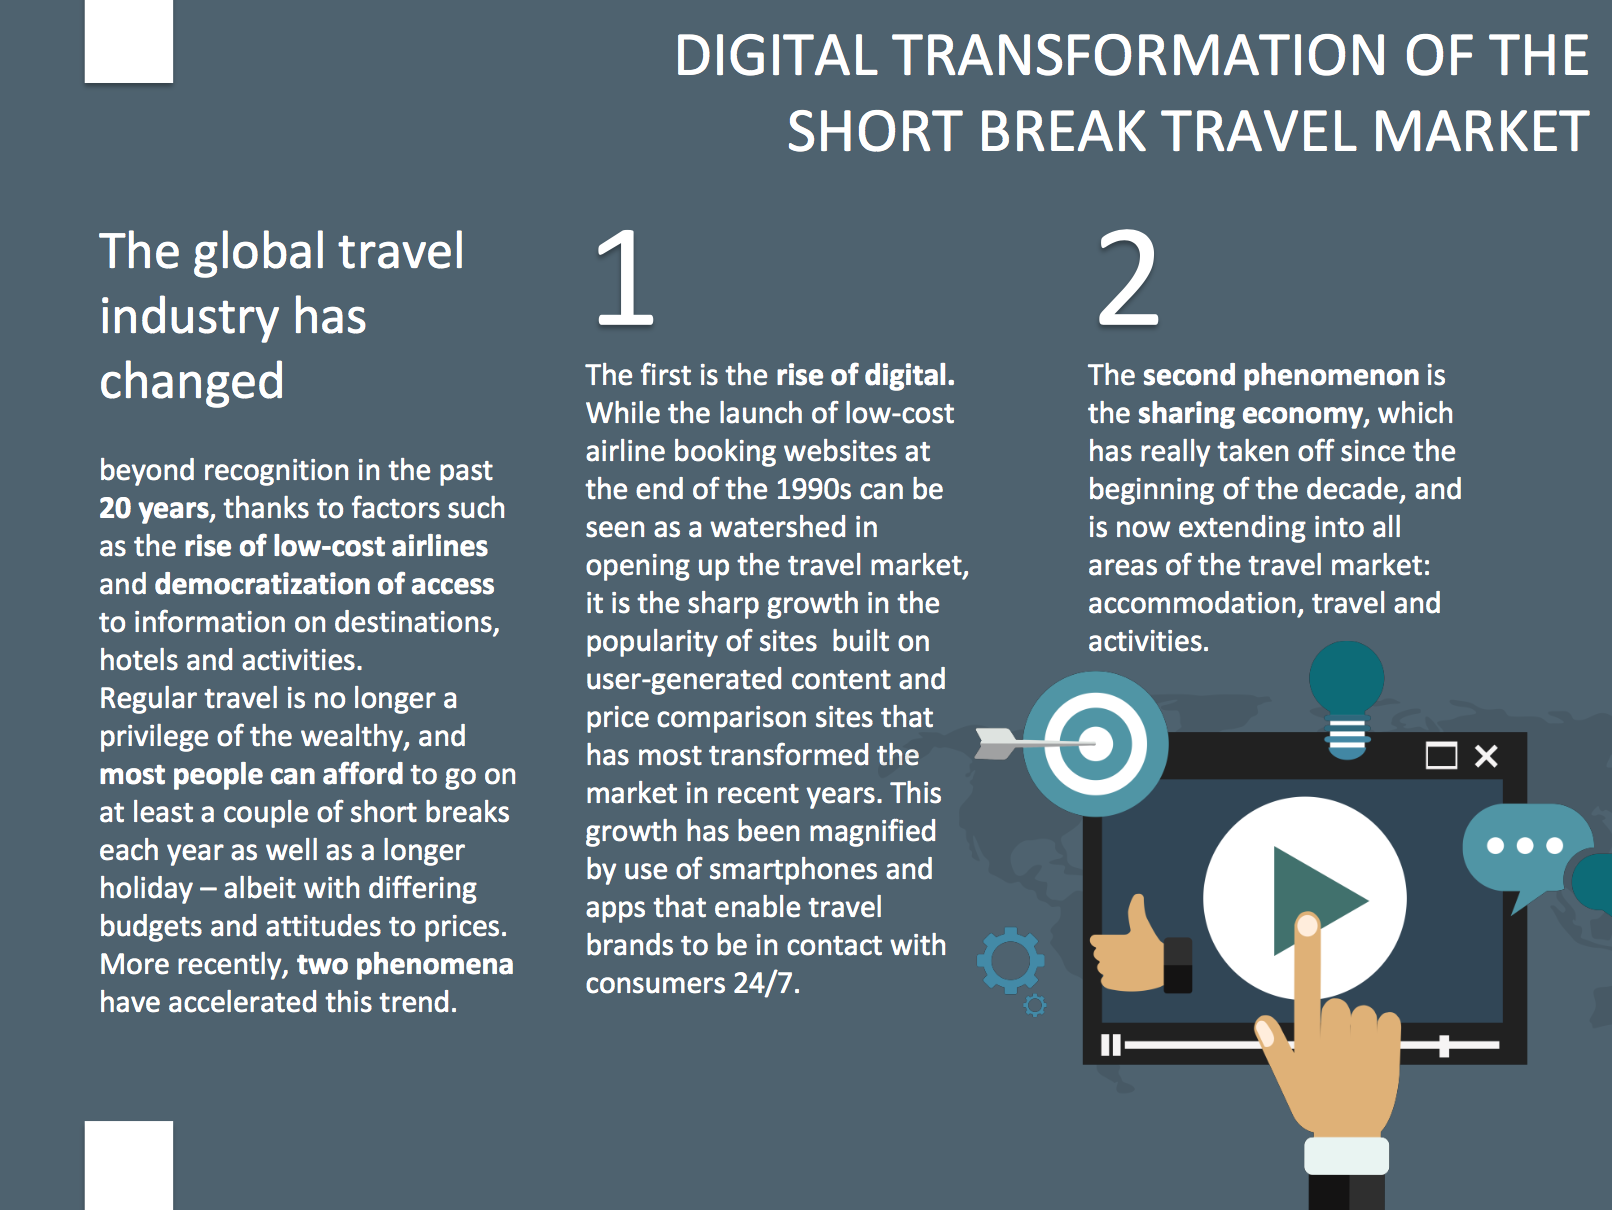 Illustration The global travel industry has changed